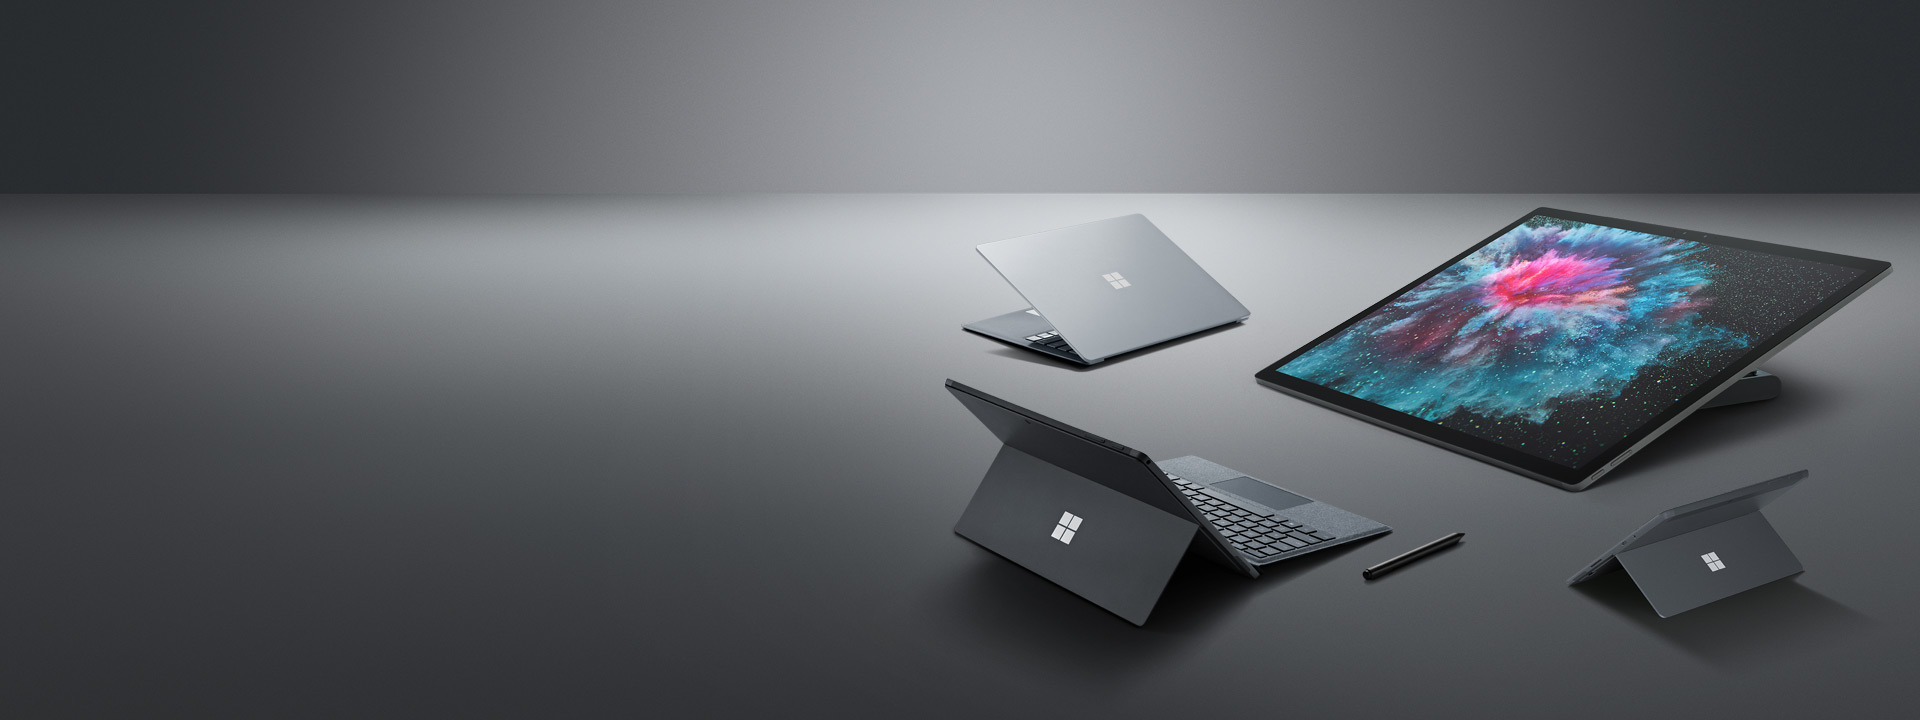 Surface Laptop 2، Surface Pro 6، Surface Go، Surface Studio 2